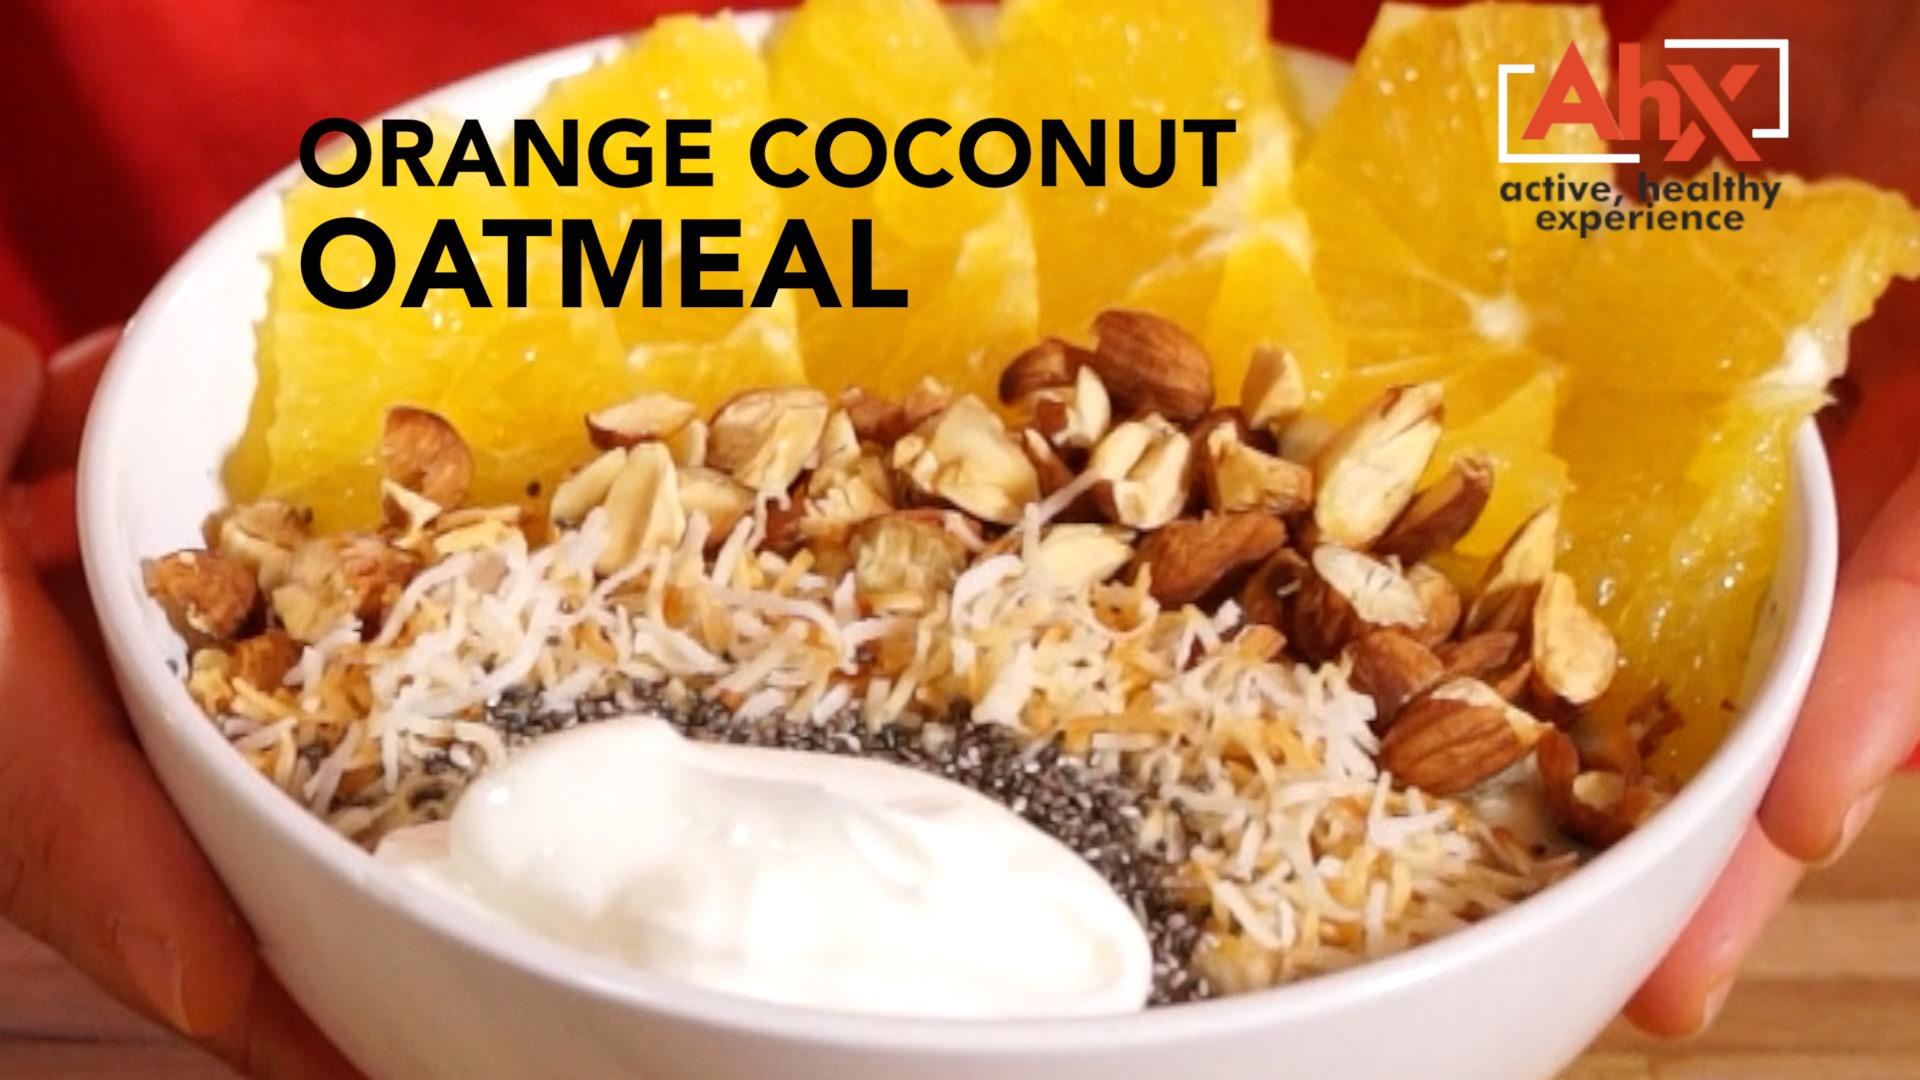 Tropical and Tasty! Orange Coconut Oatmeal | AHX